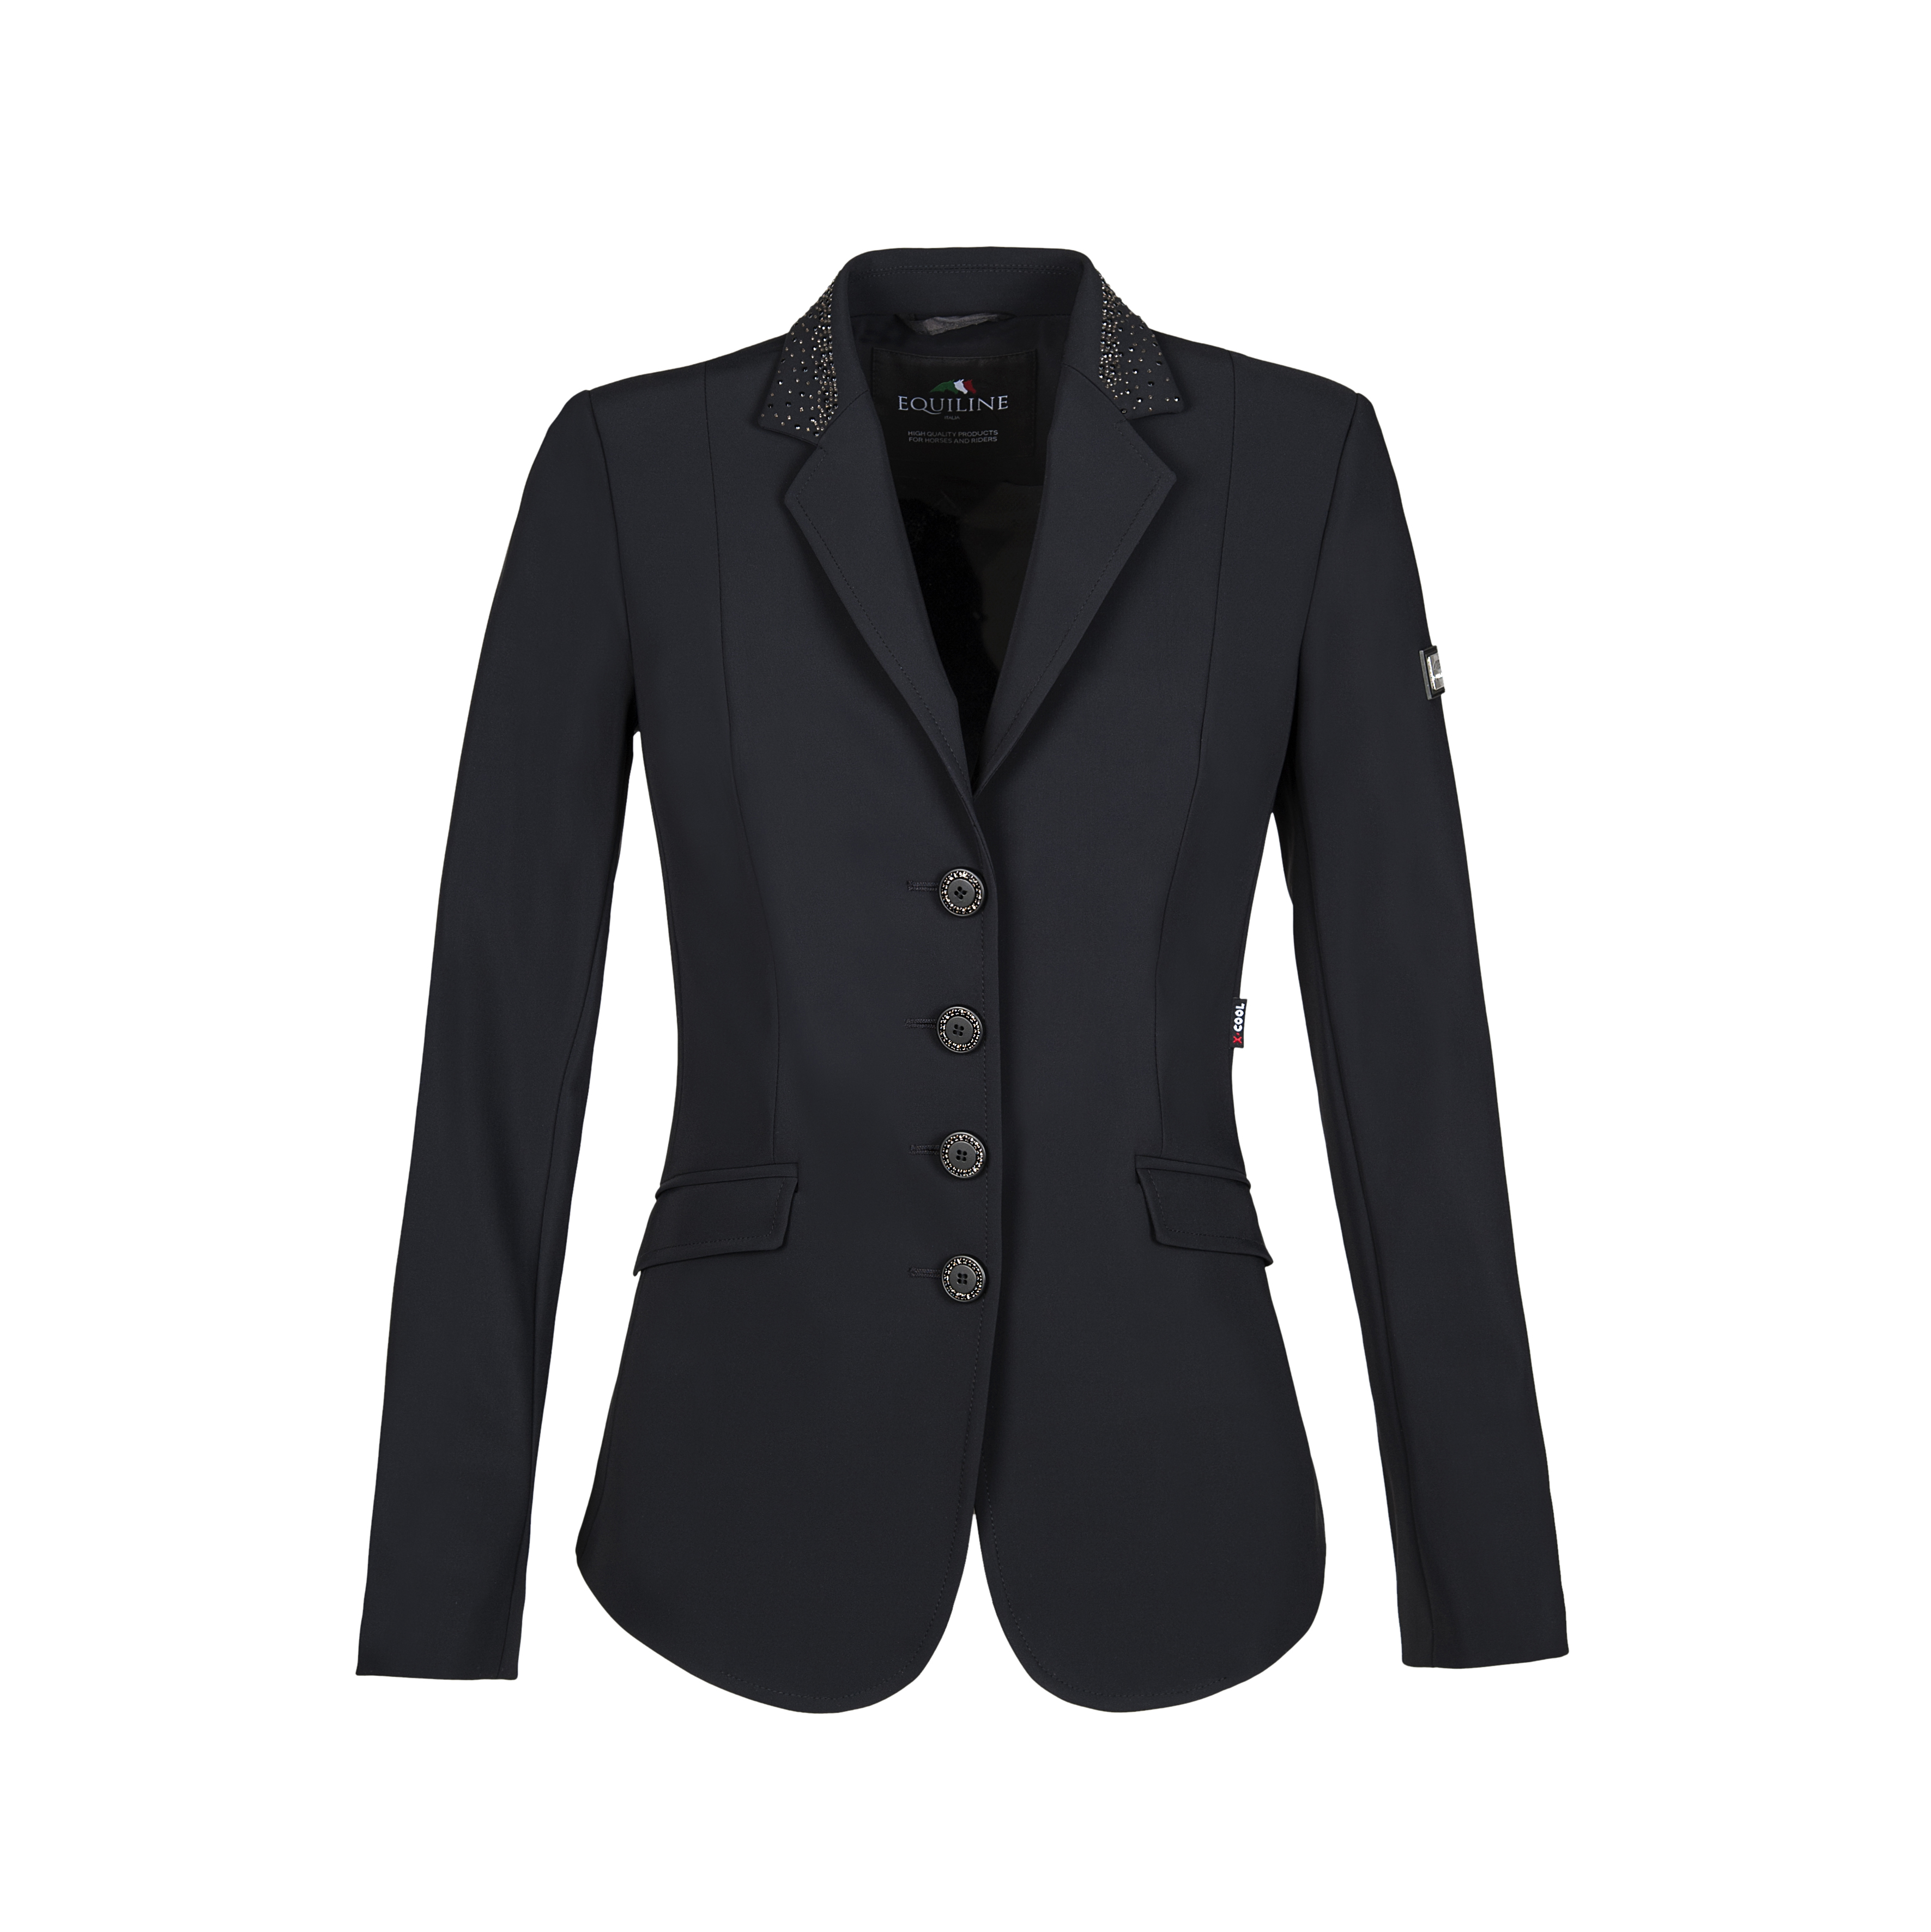 ecde02fba7 Equiline Womens Competition Jacket Chloe